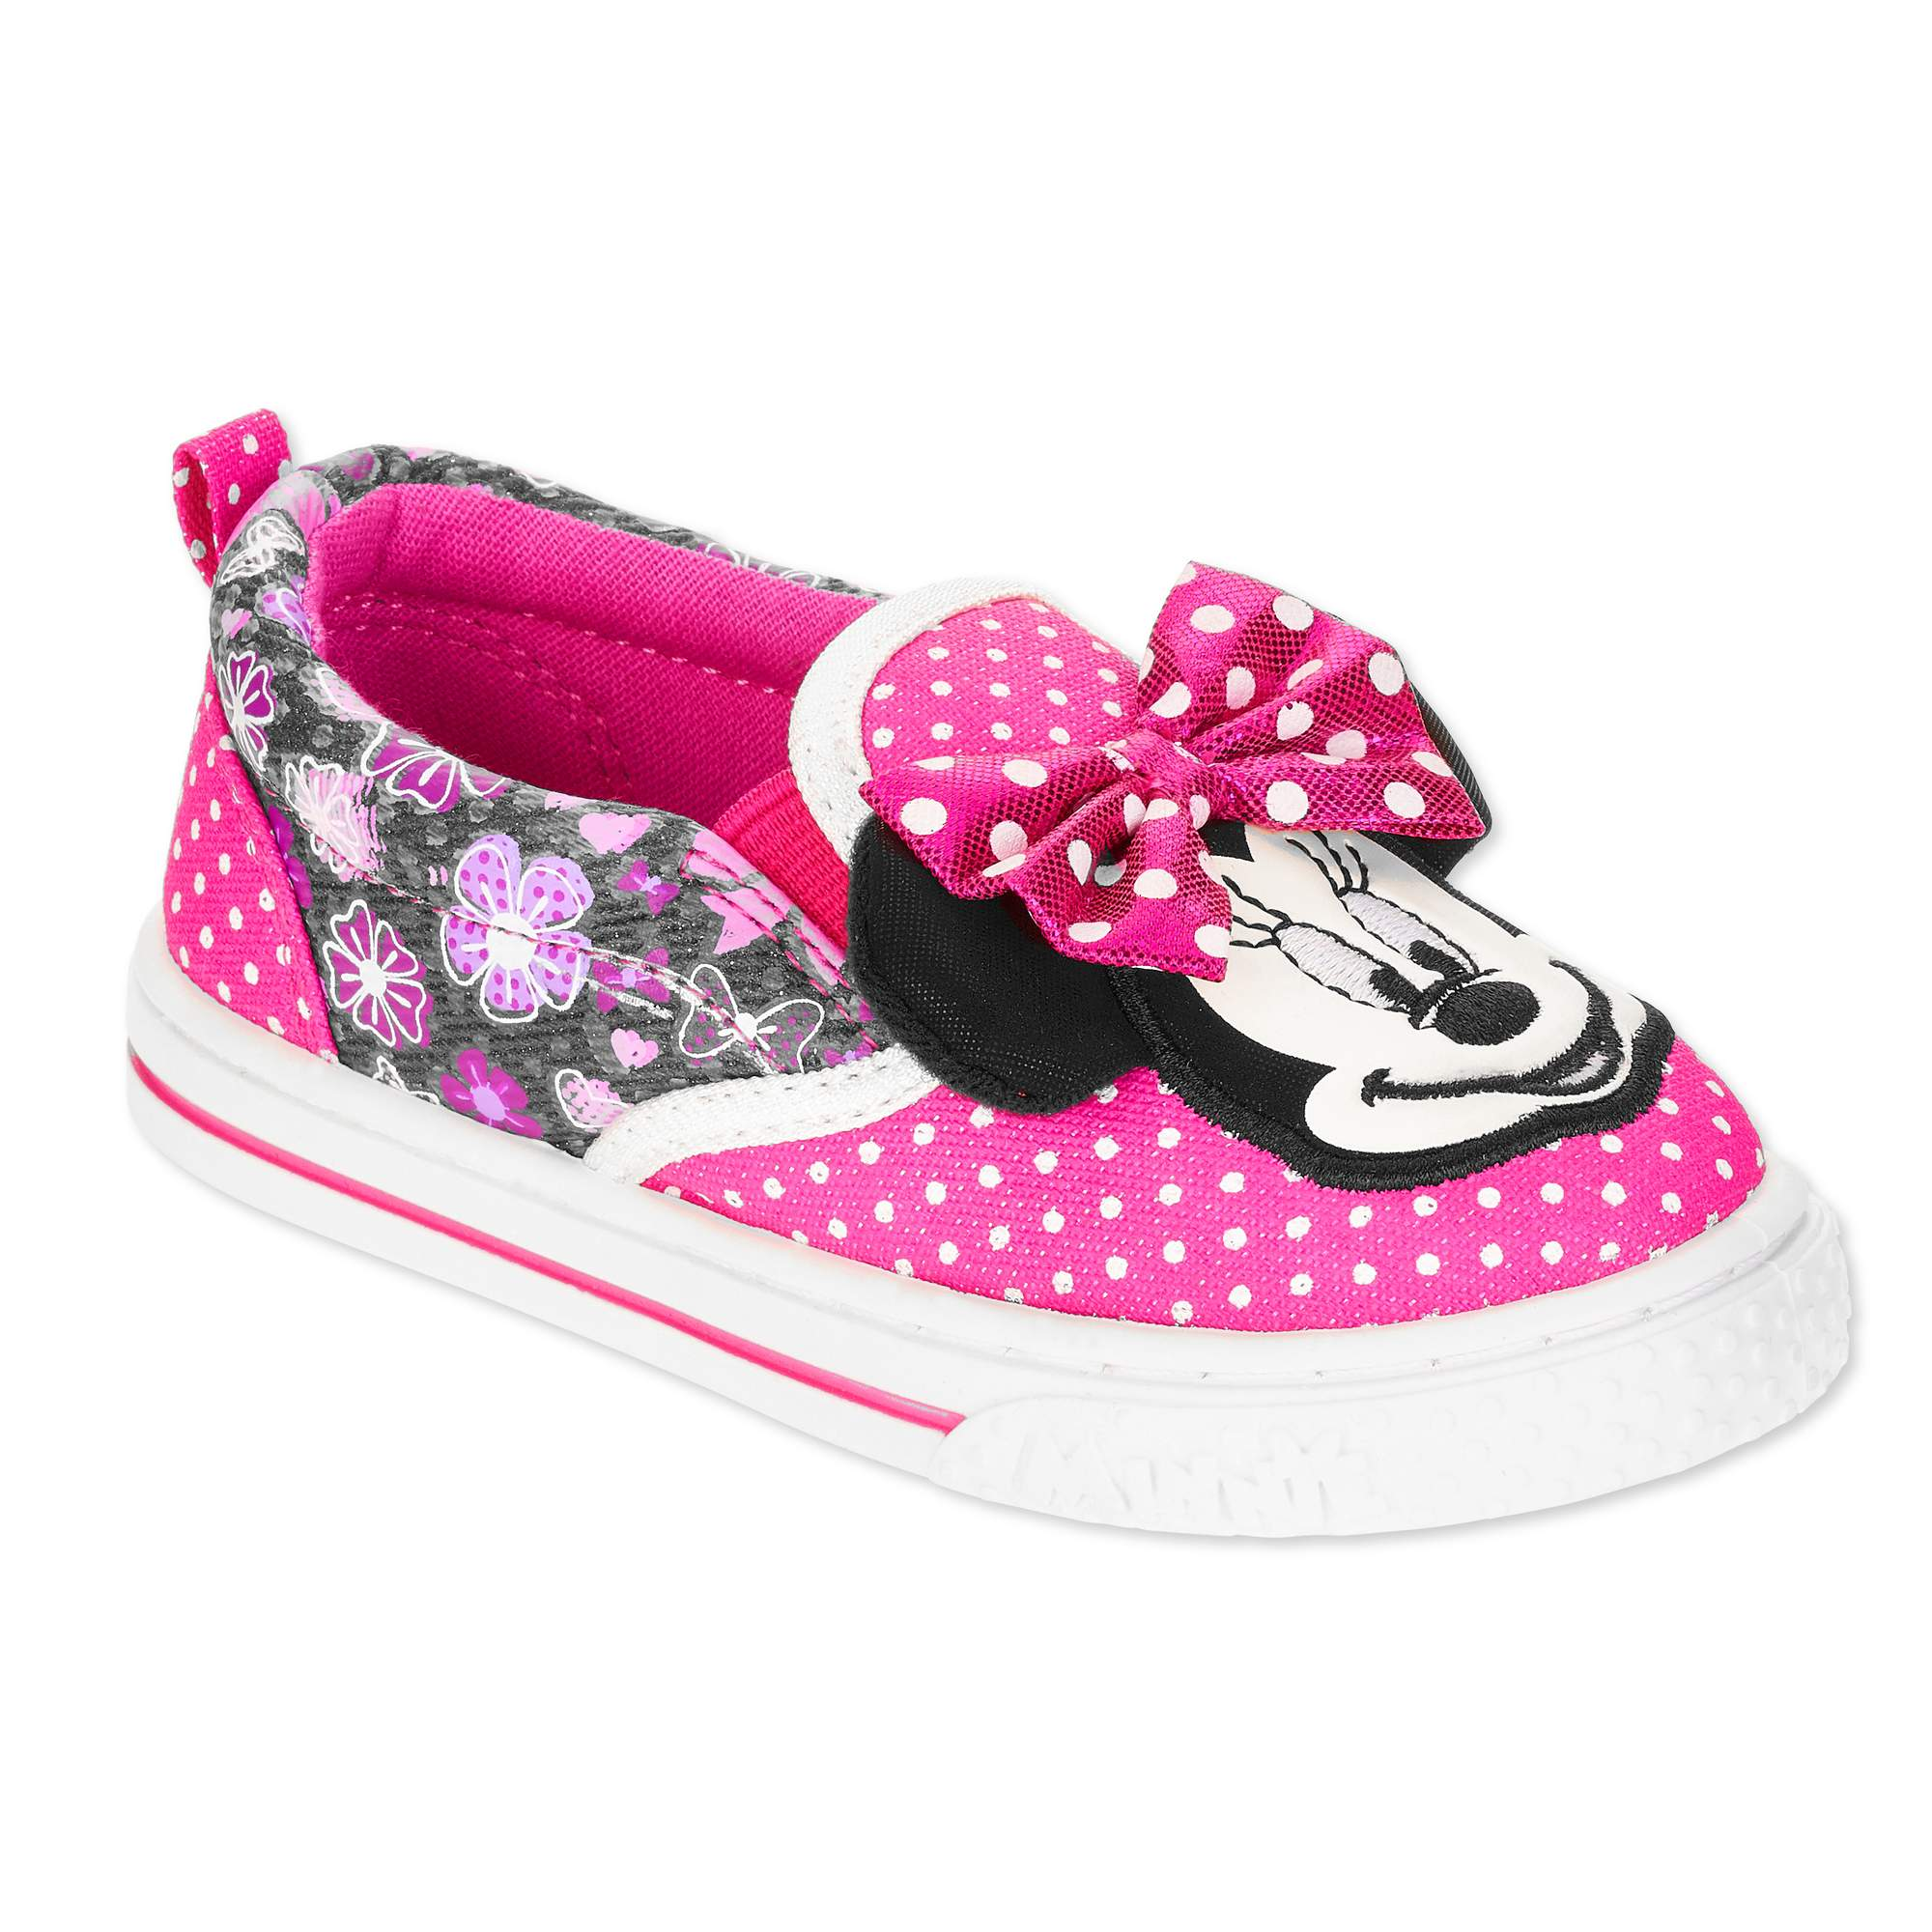 Minnie Mouse Toddler Girls' Casual Slip-on Shoe